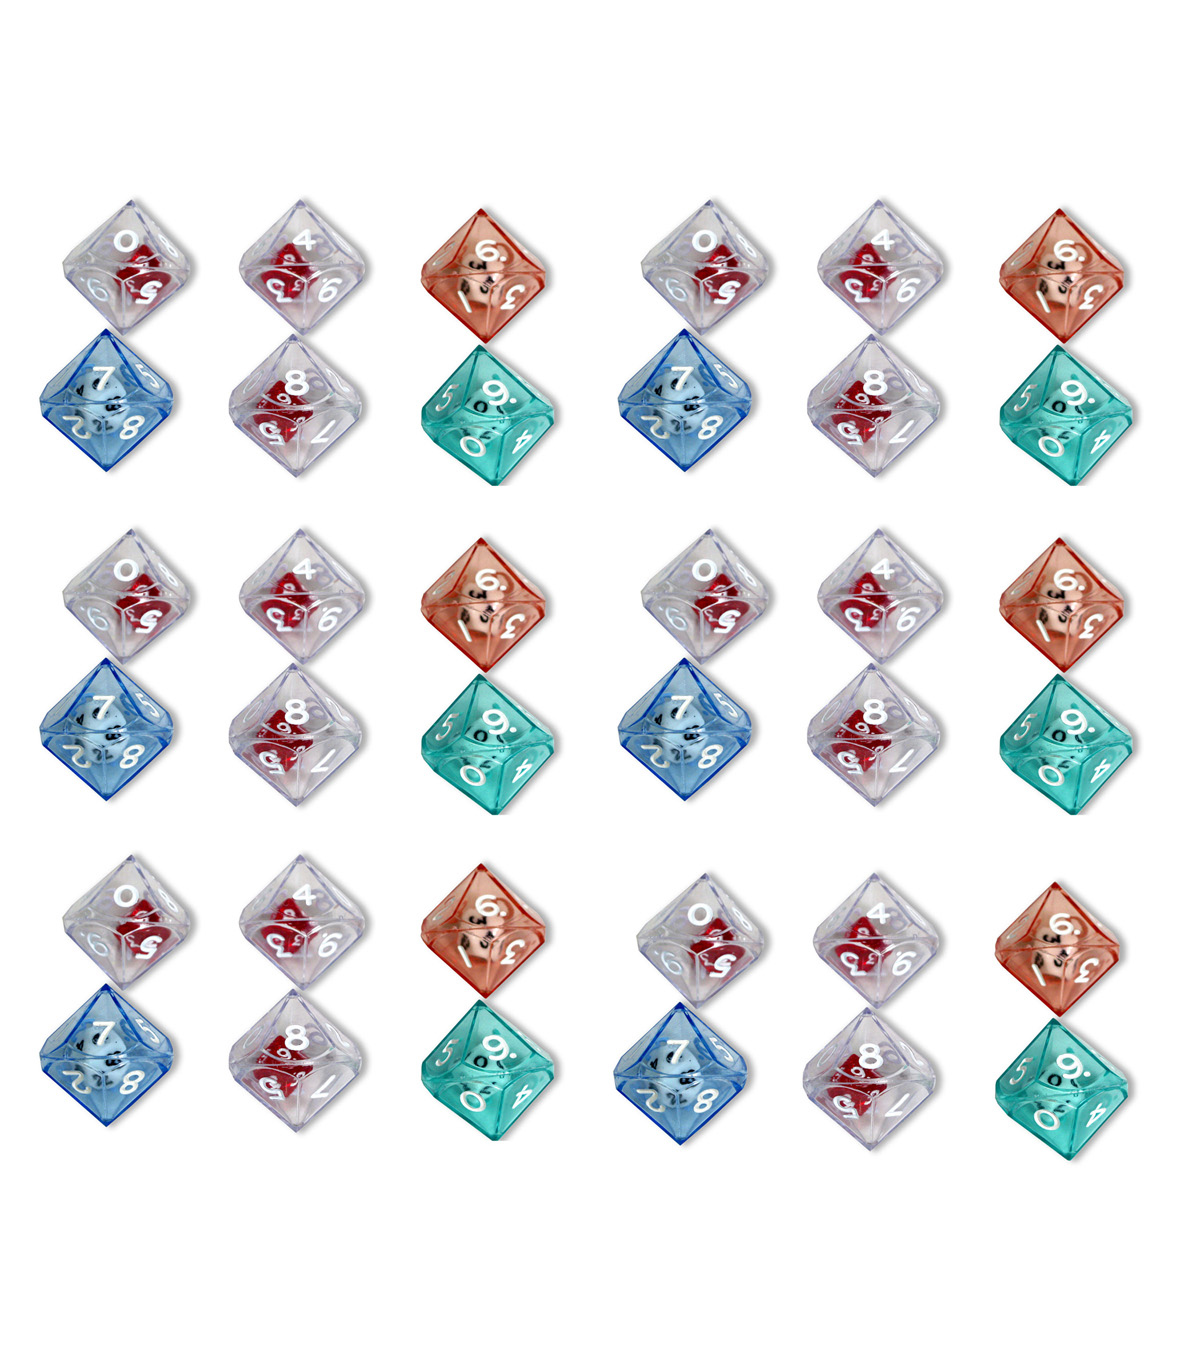 Koplow Games 10-Sided Double Dice, 6 Per Pack, 6 Packs